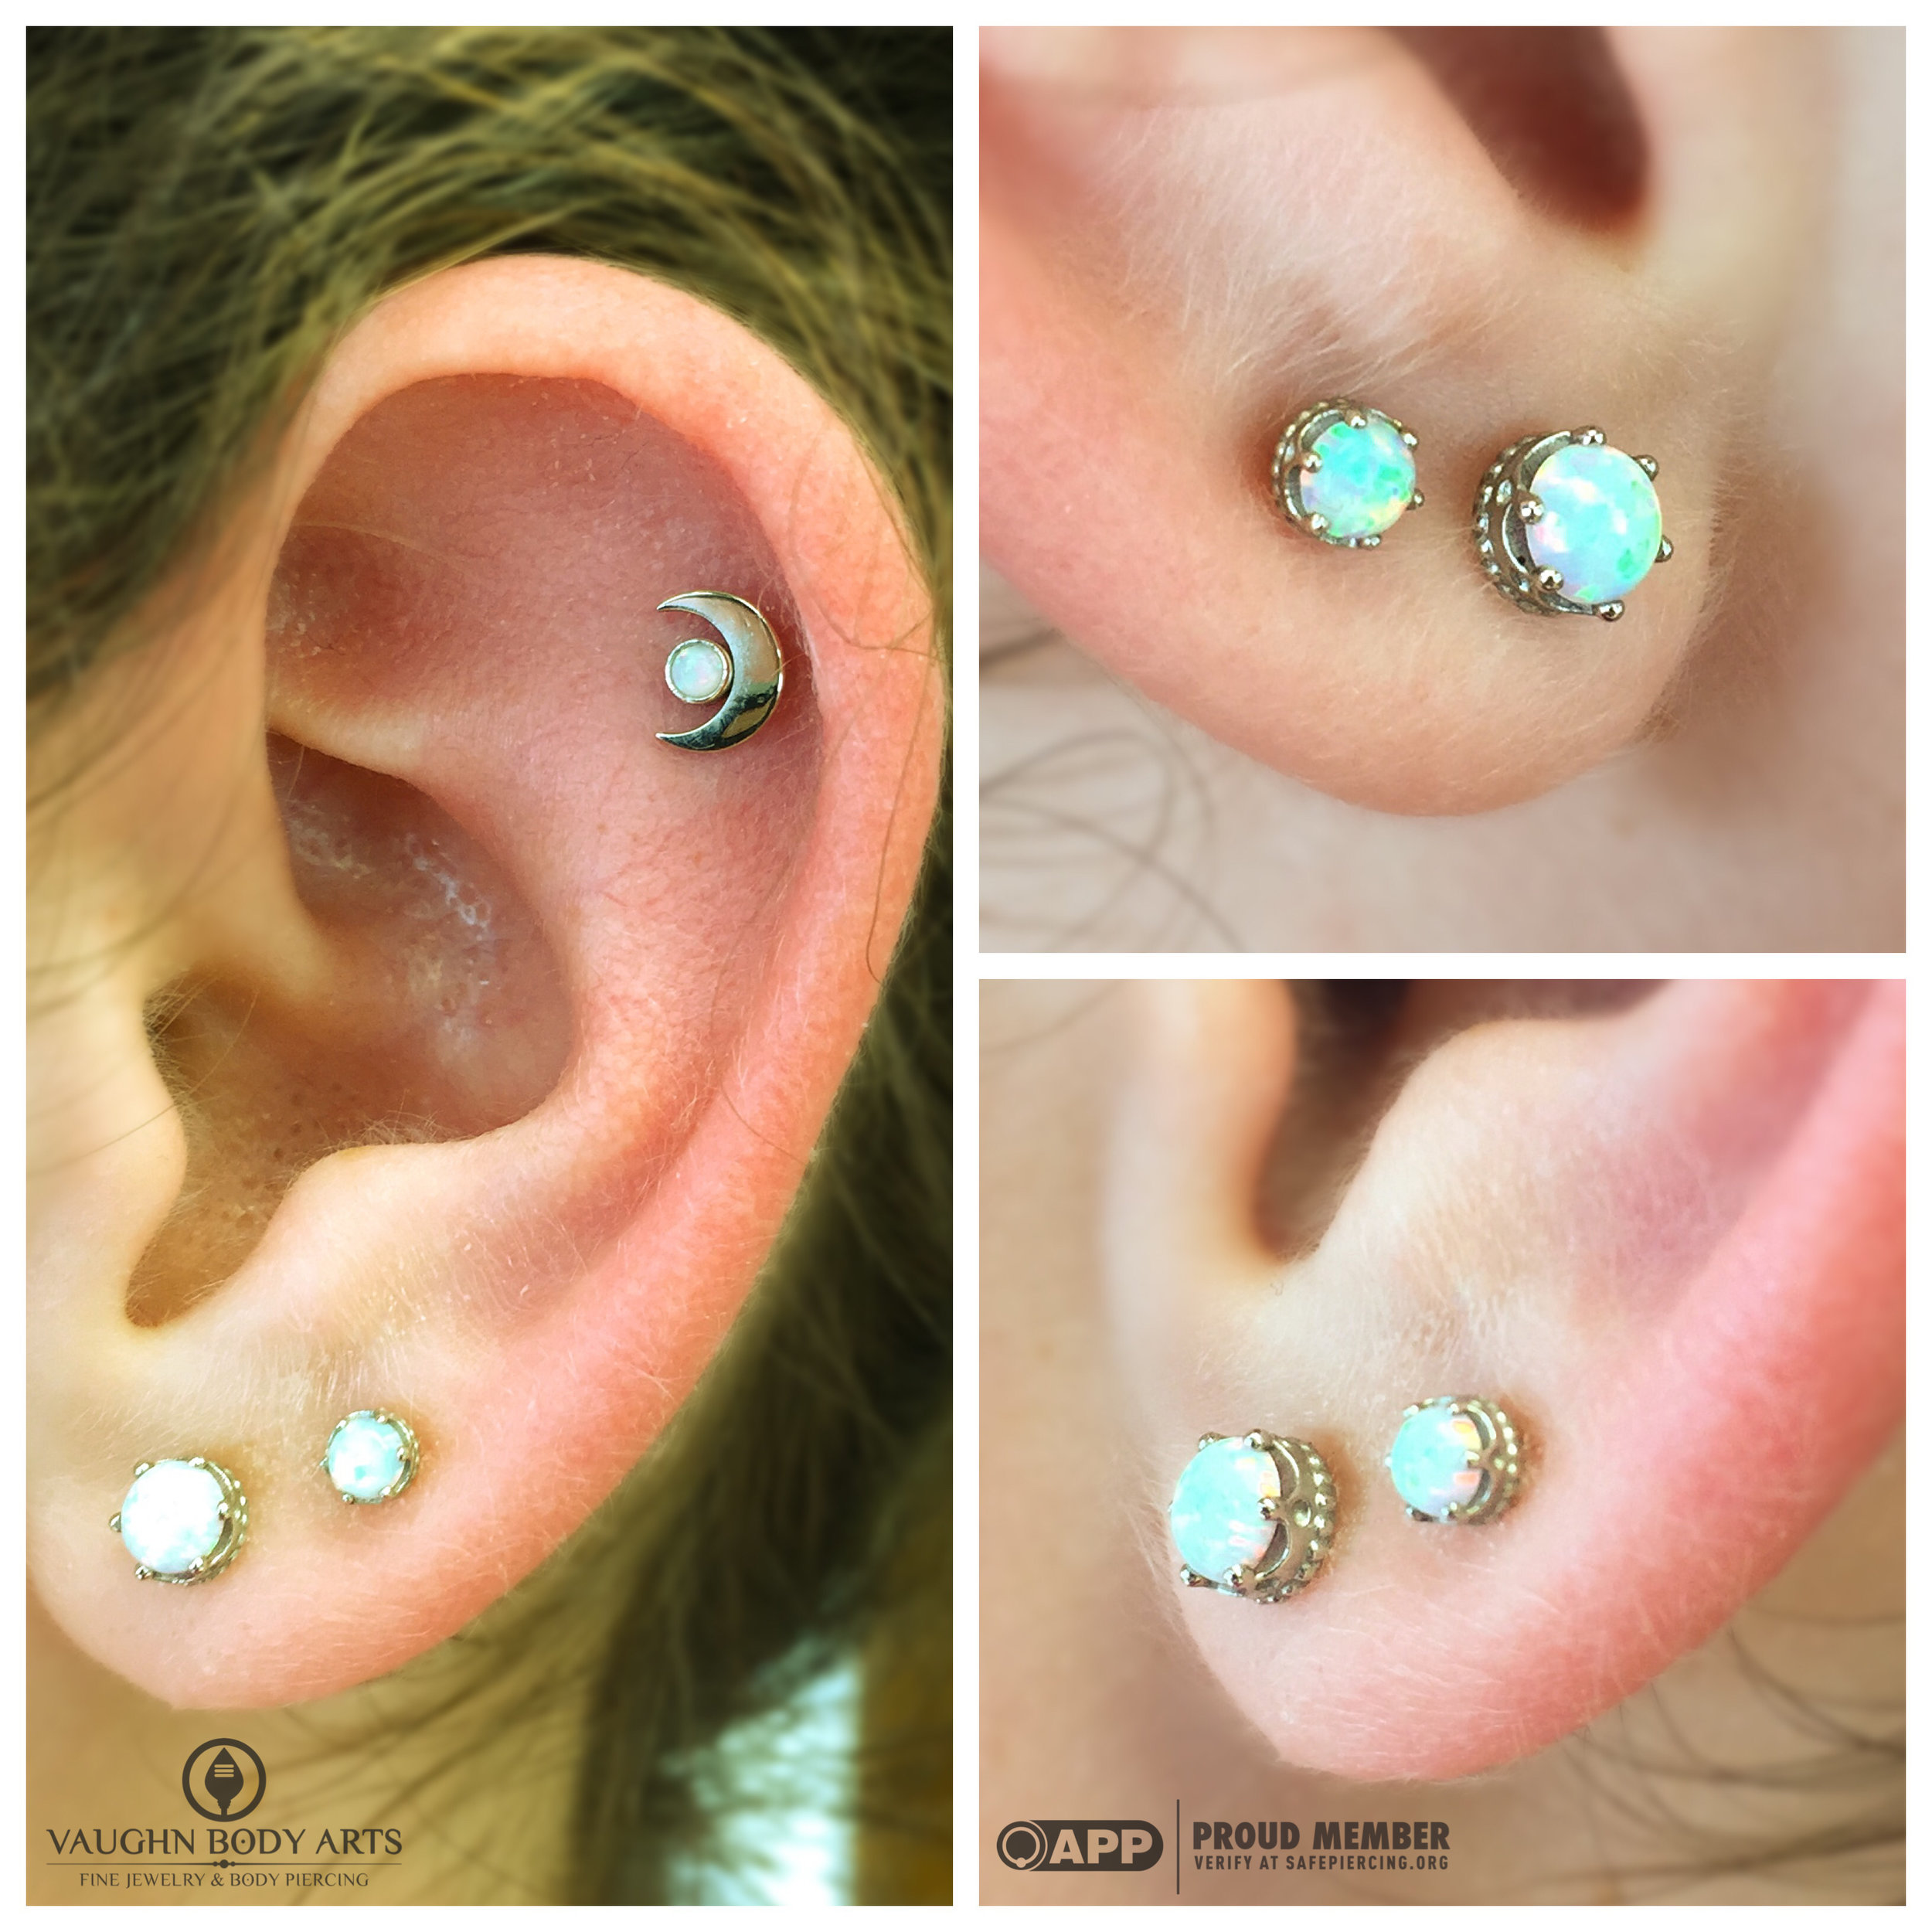 """Earlobe piercings with 18k white gold """"Queen"""" ends, and helix piercing with 18k gold moon end from Anatometal."""